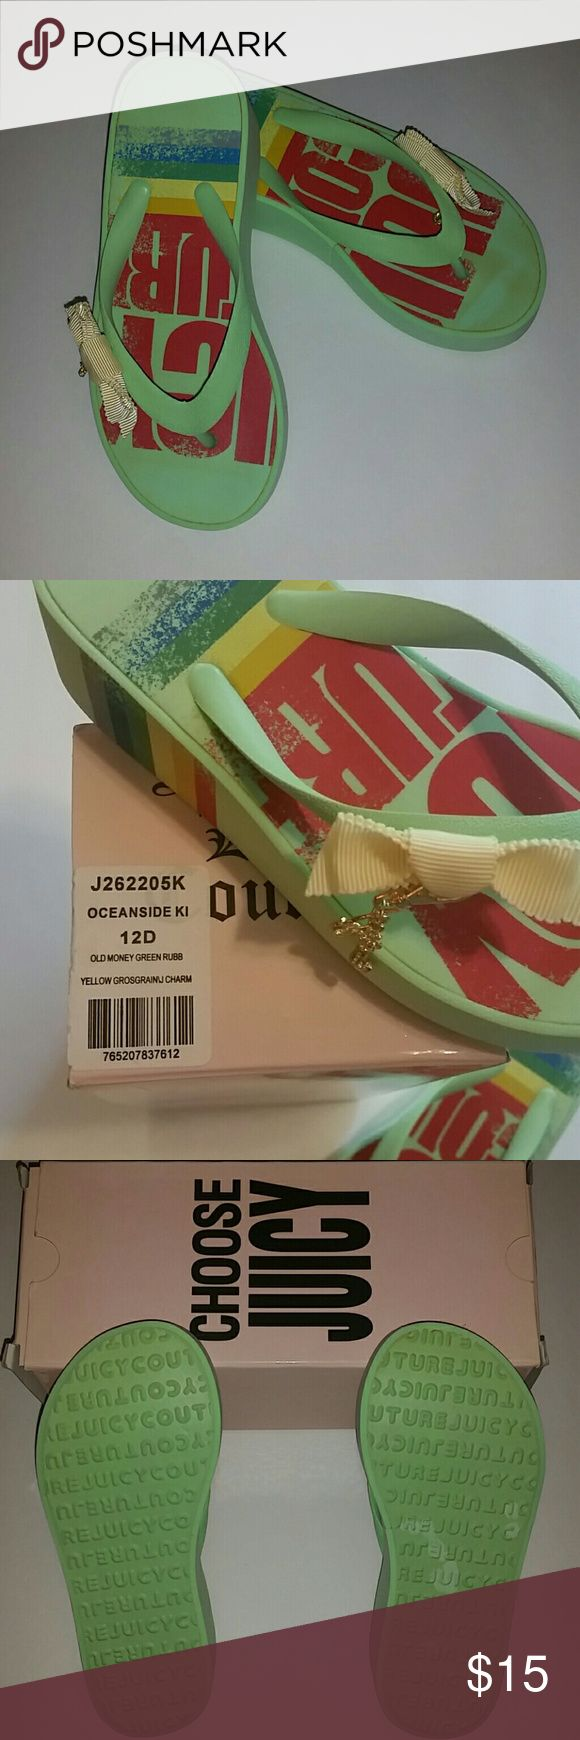 NIB Juicy Couture FlipFlops Kids size 12D Brand new in box Juicy Couture flip flops for kids size 12D. Oceanside Kids Old Money green rubber yellow grosgrain with gold Juicy charms.  Style # J262205K There is slight discoloration on the toe of the left flip flop. I'm not sure what it is from but these are brand new and never worn. Super cute!! Juicy Couture Shoes Sandals & Flip Flops